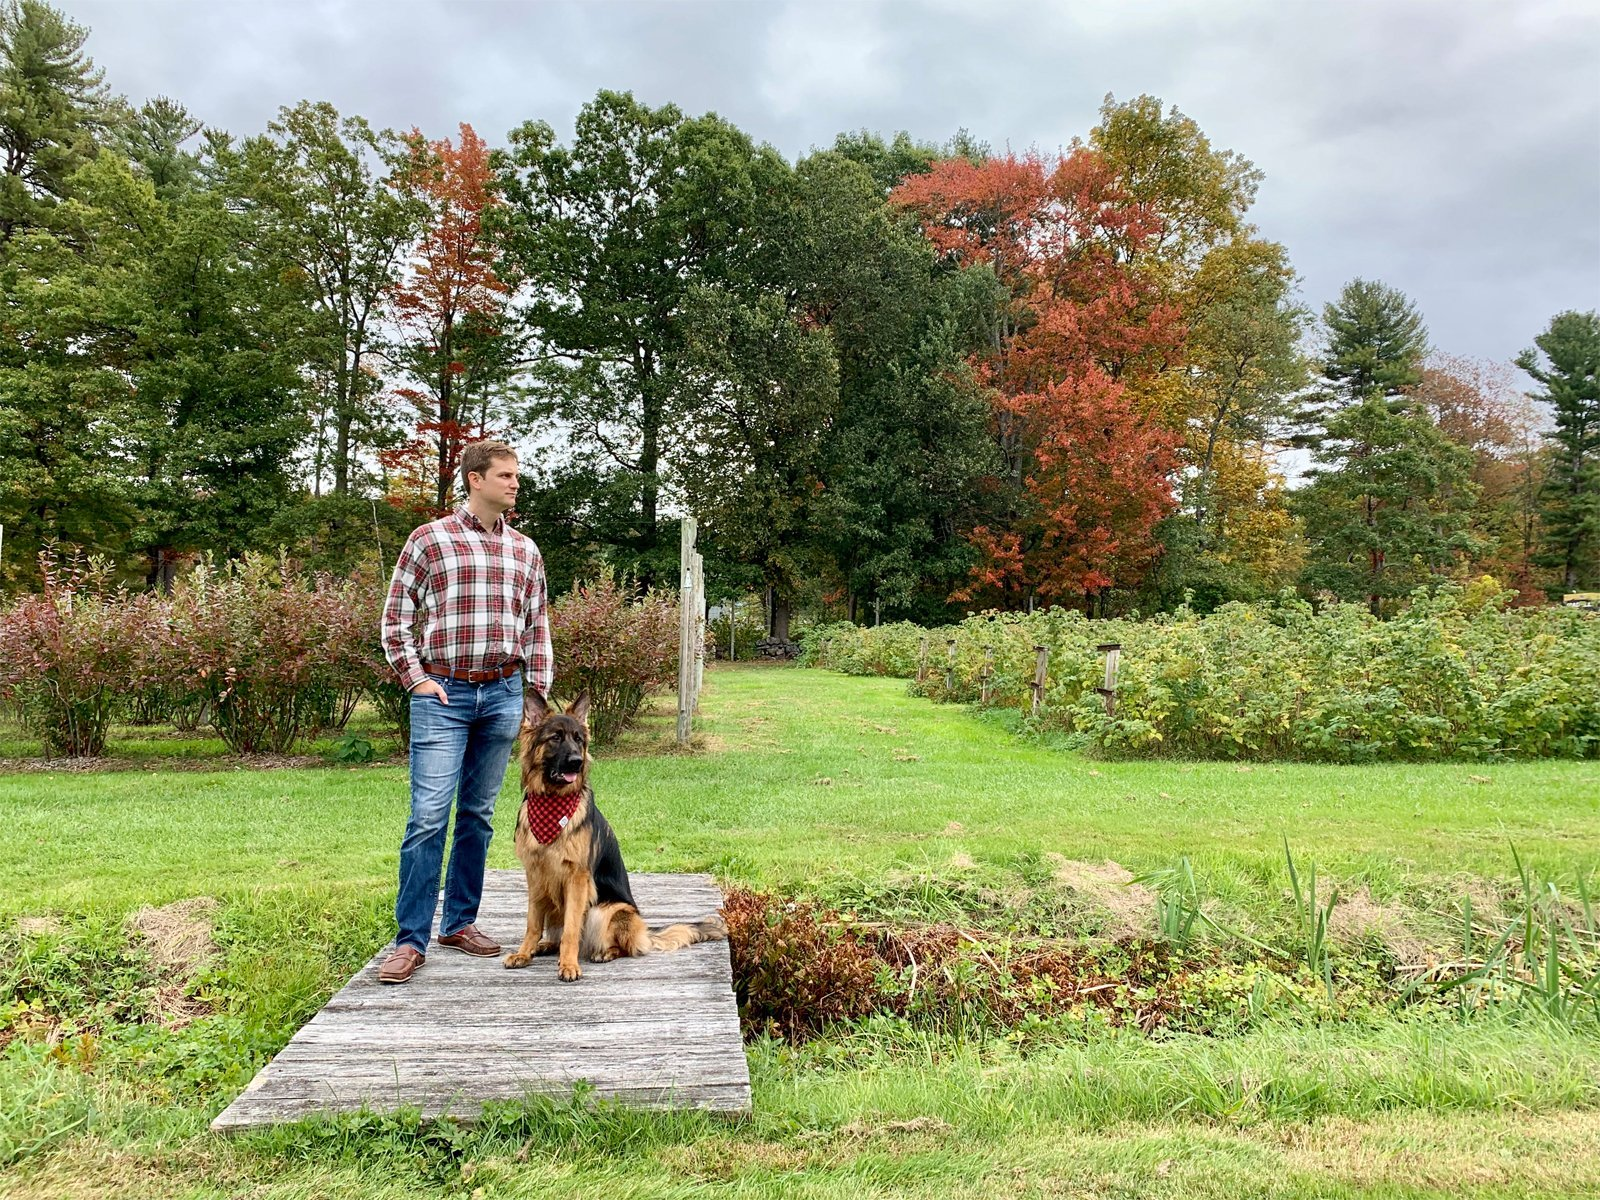 man and dog in an apple orchard in fall